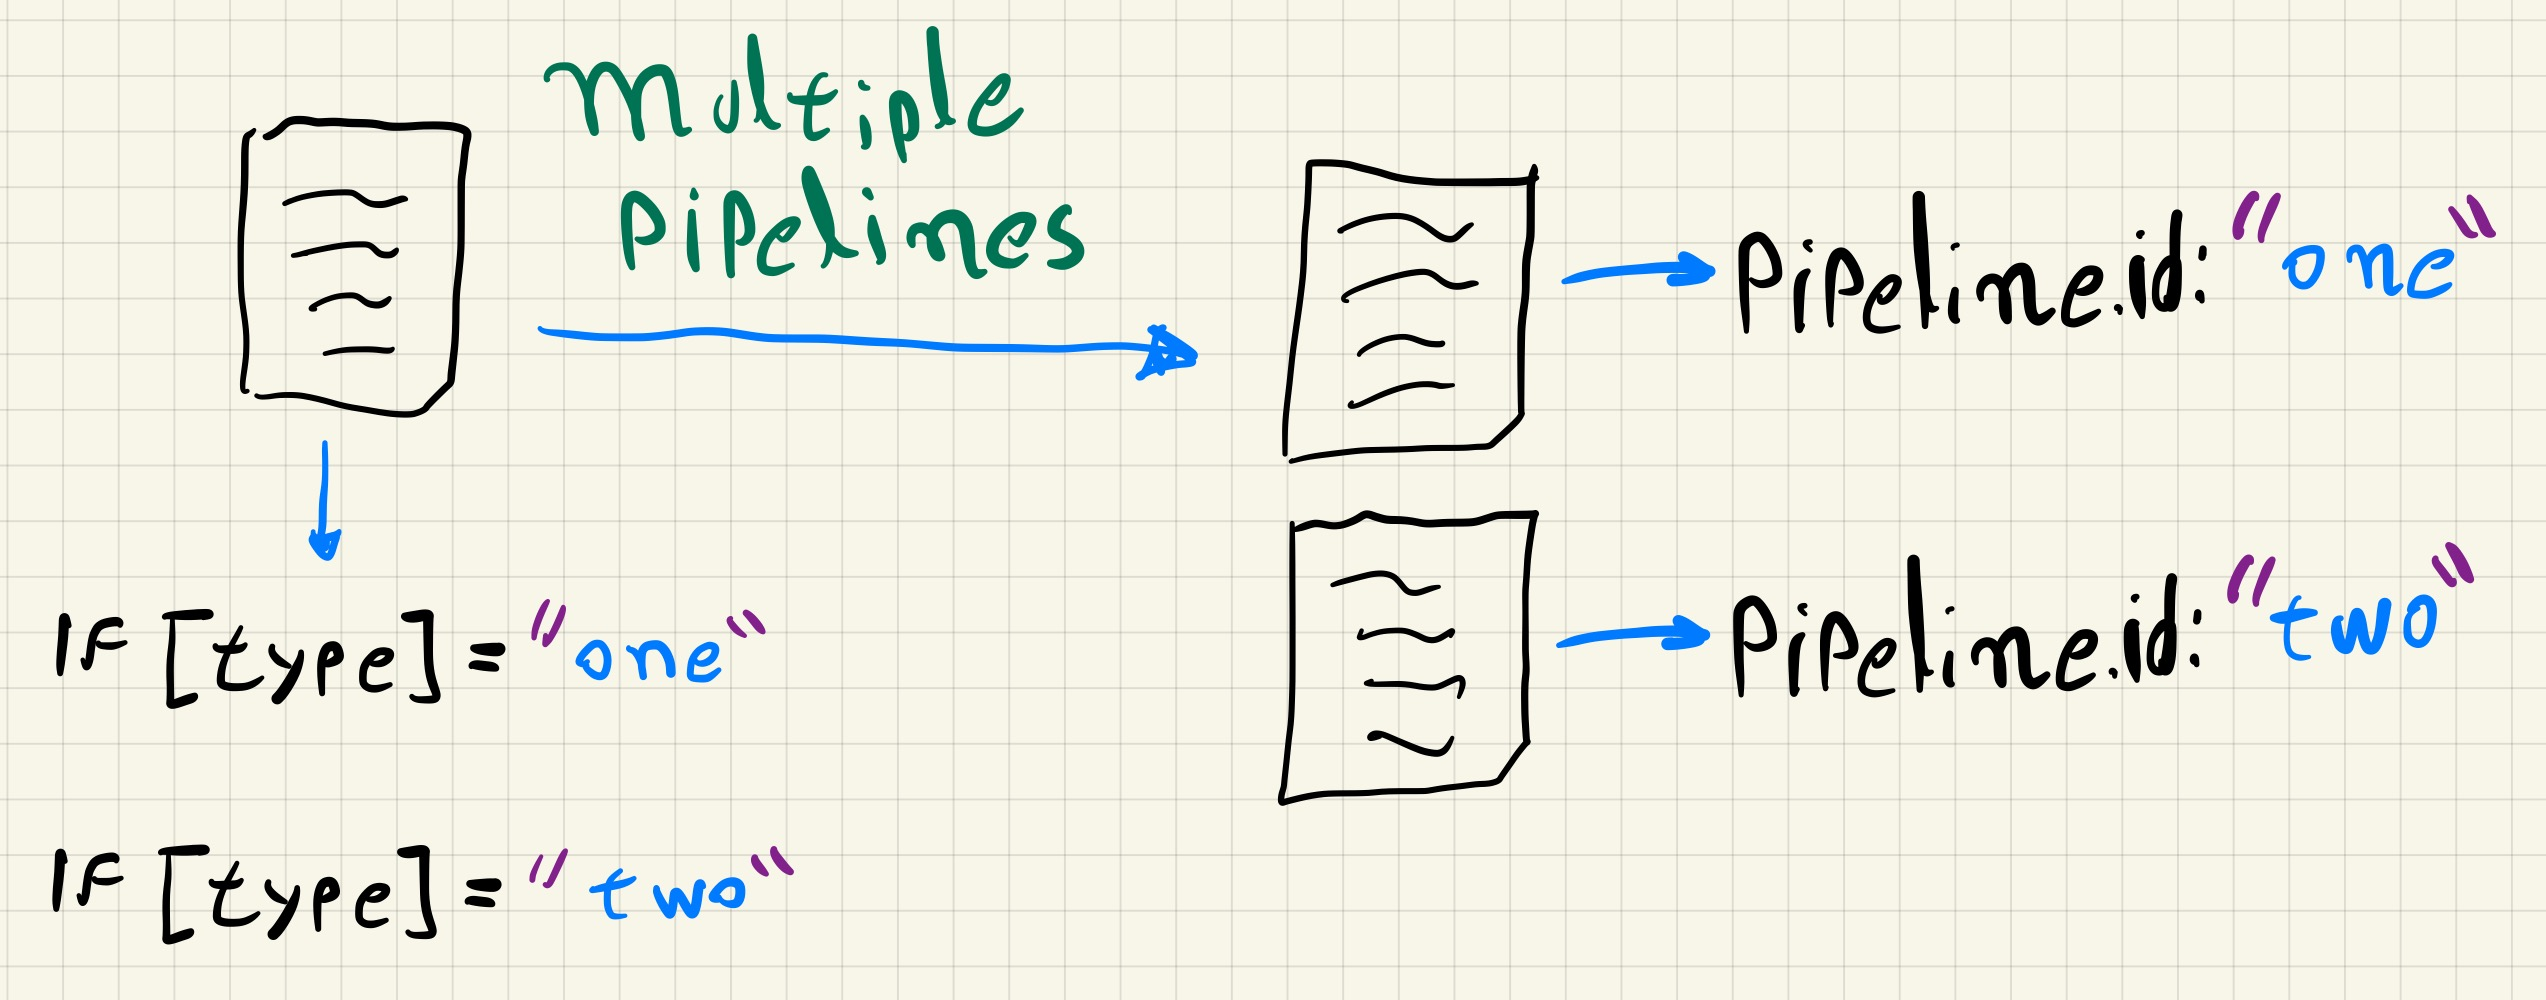 multiple pipelines